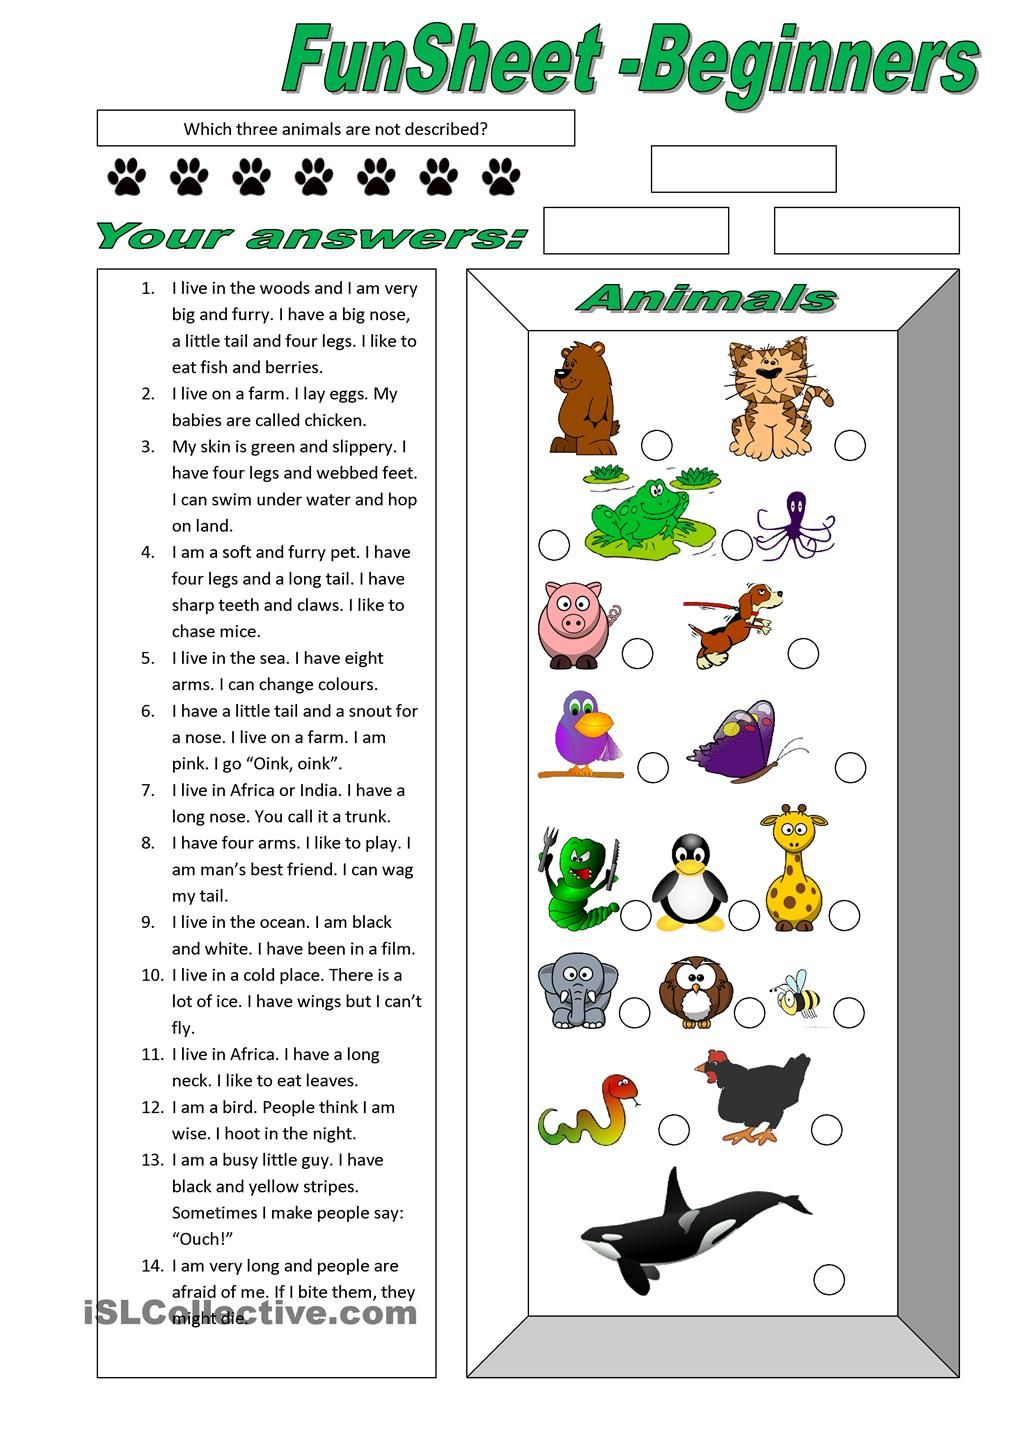 Worksheets Free Esl Worksheets For Beginners funsheet for beginners animals free esl worksheets m worksheets